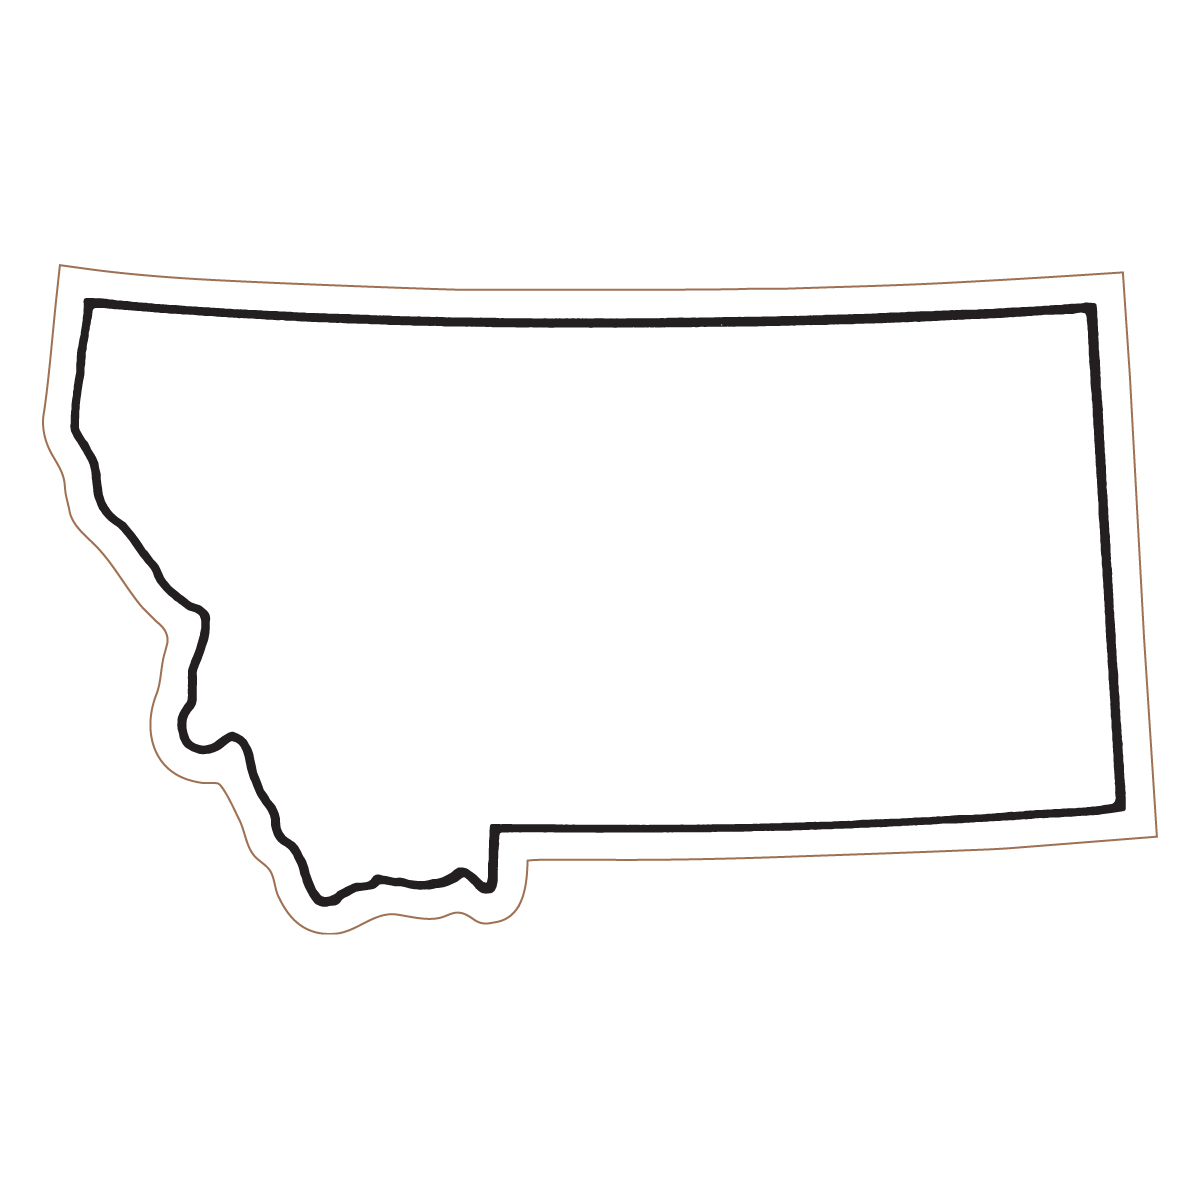 Clipart states outline montana svg freeuse stock Clipart states outline montana - ClipartFest svg freeuse stock